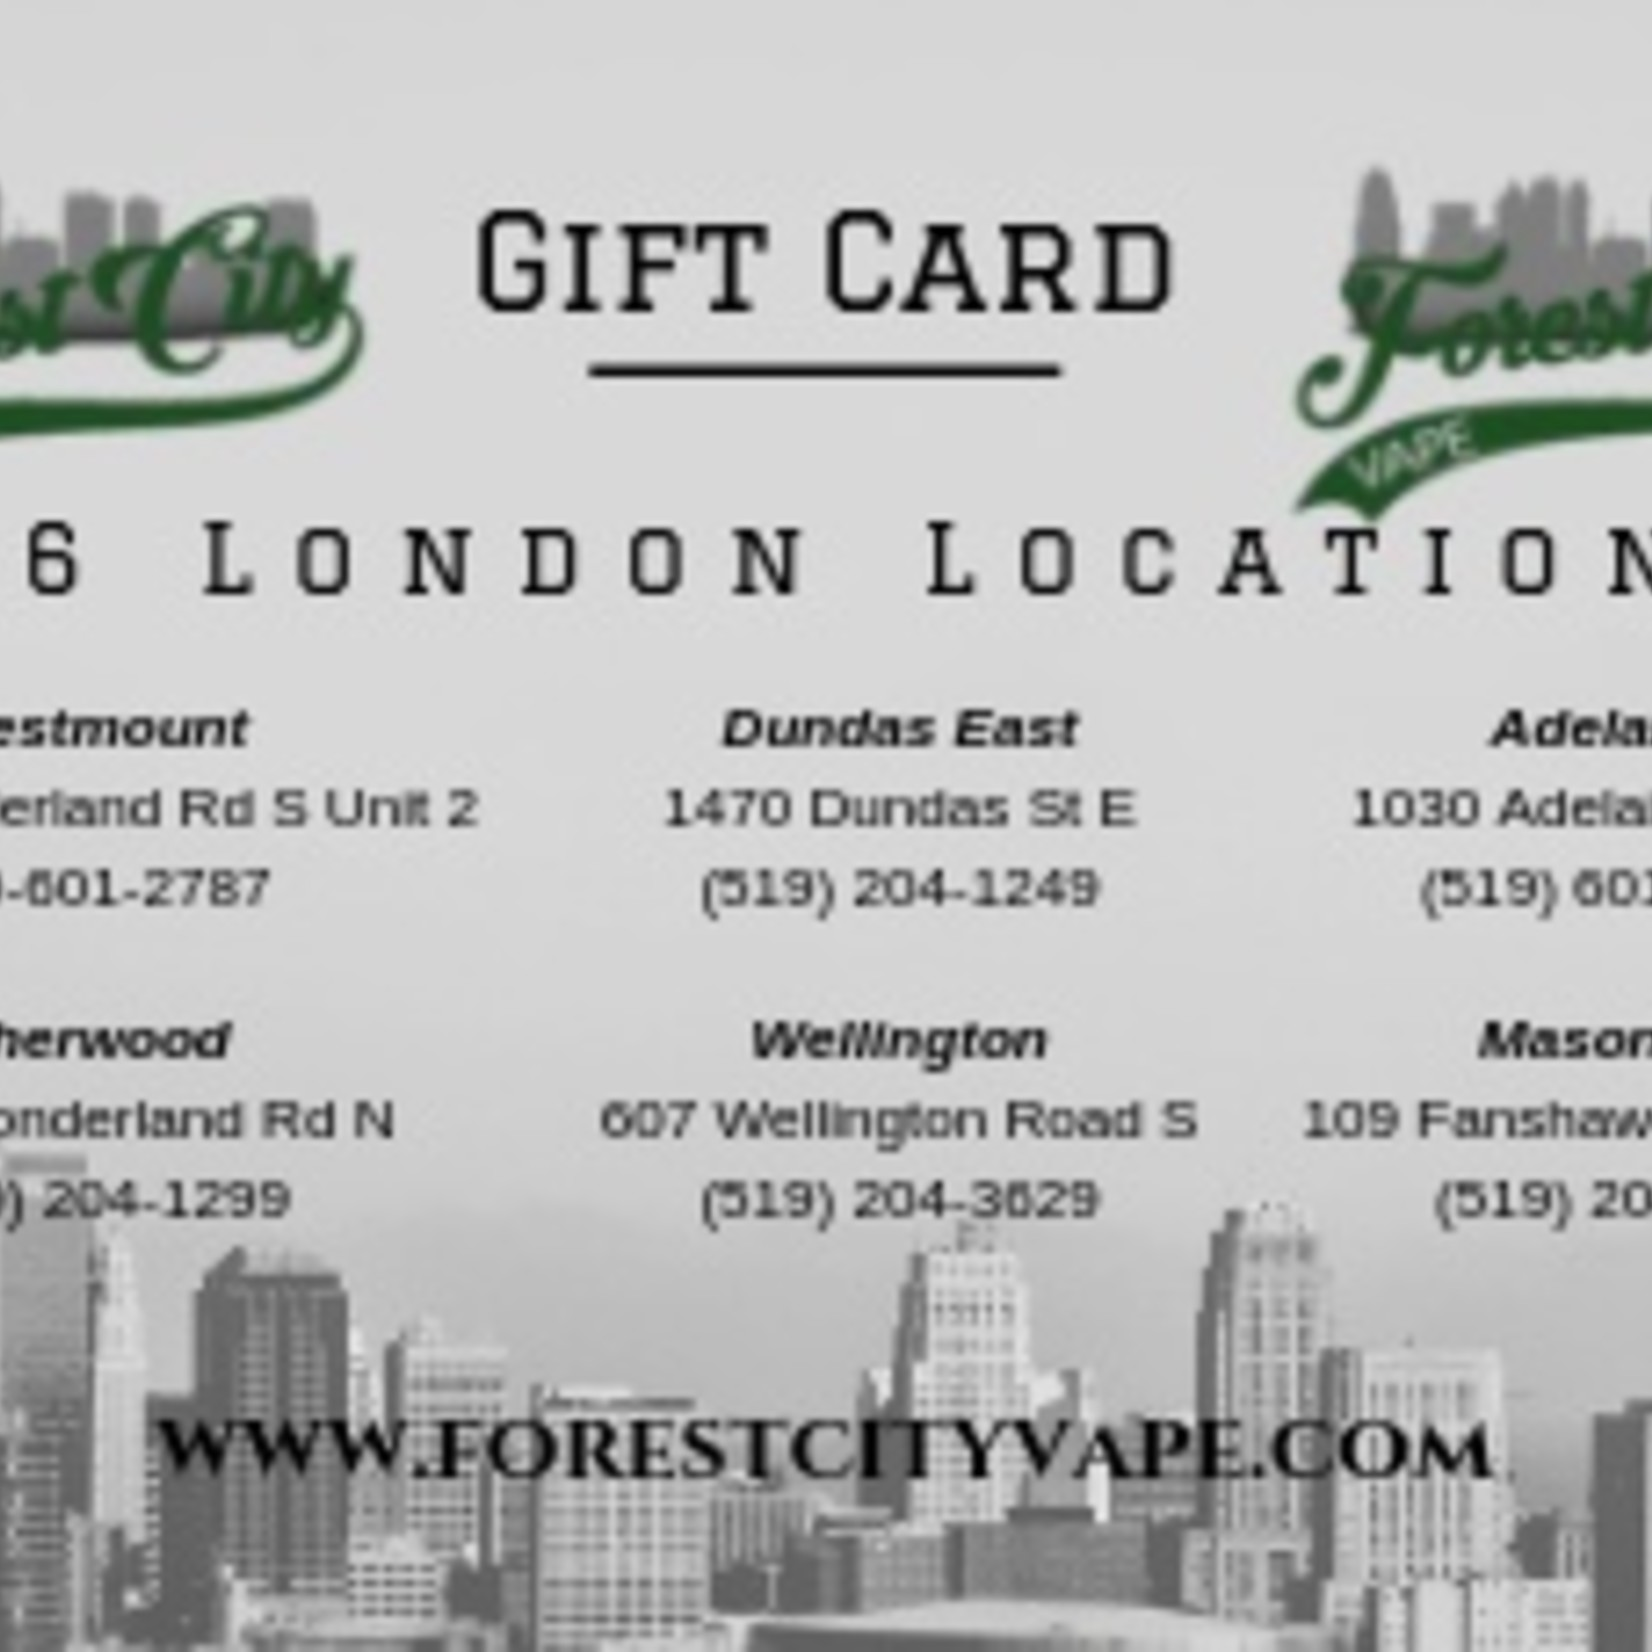 Re-loadable Gift Card